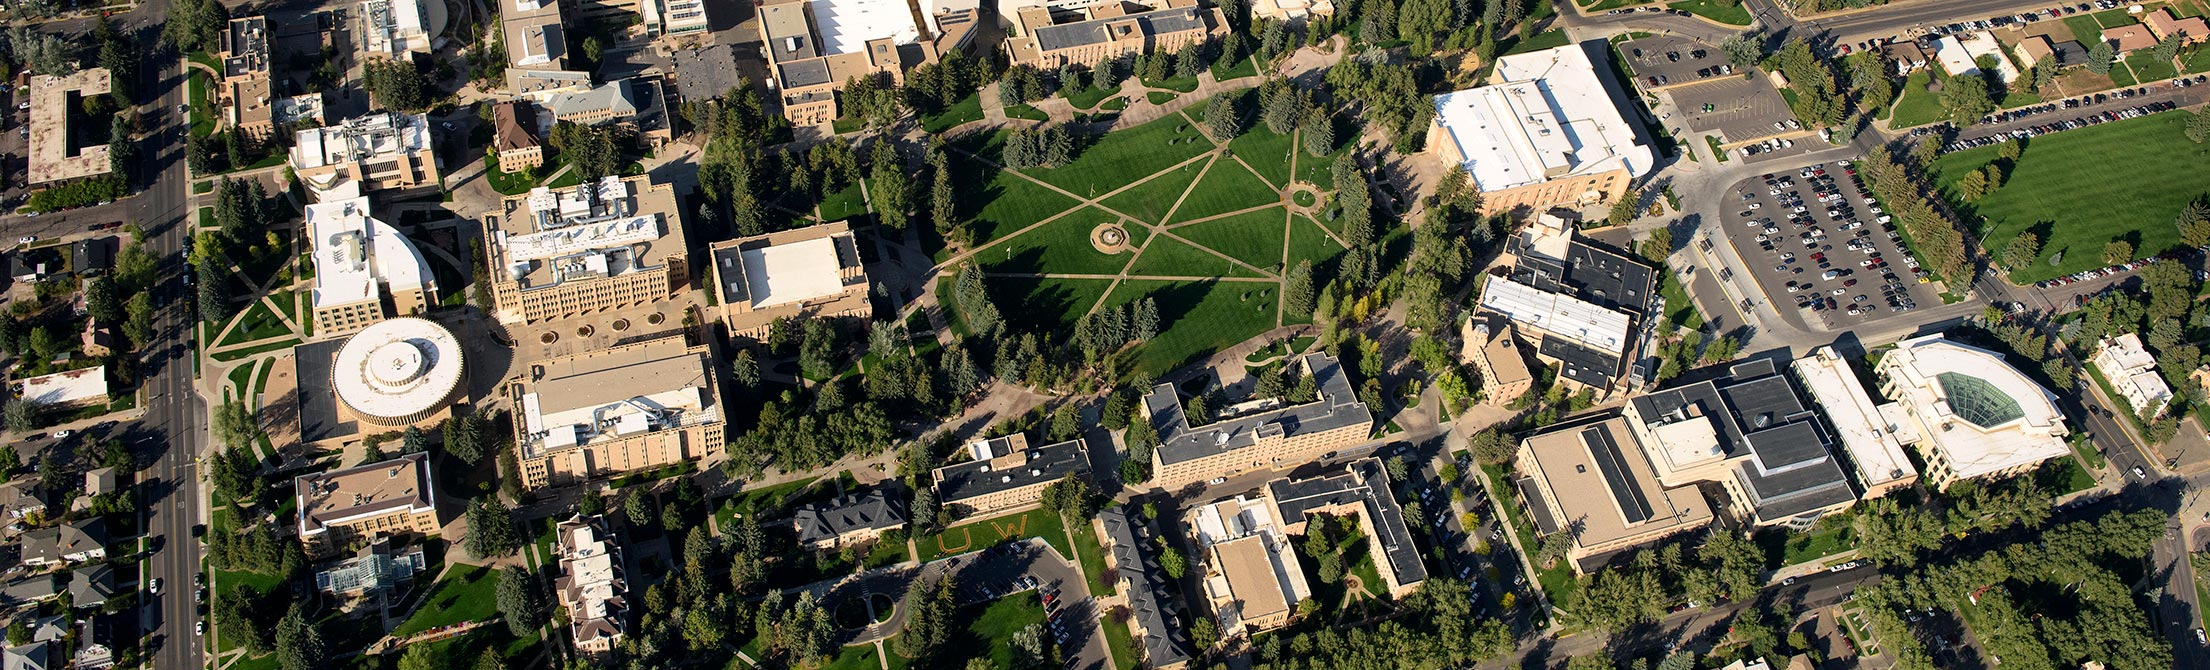 Aerial image of UW's campus